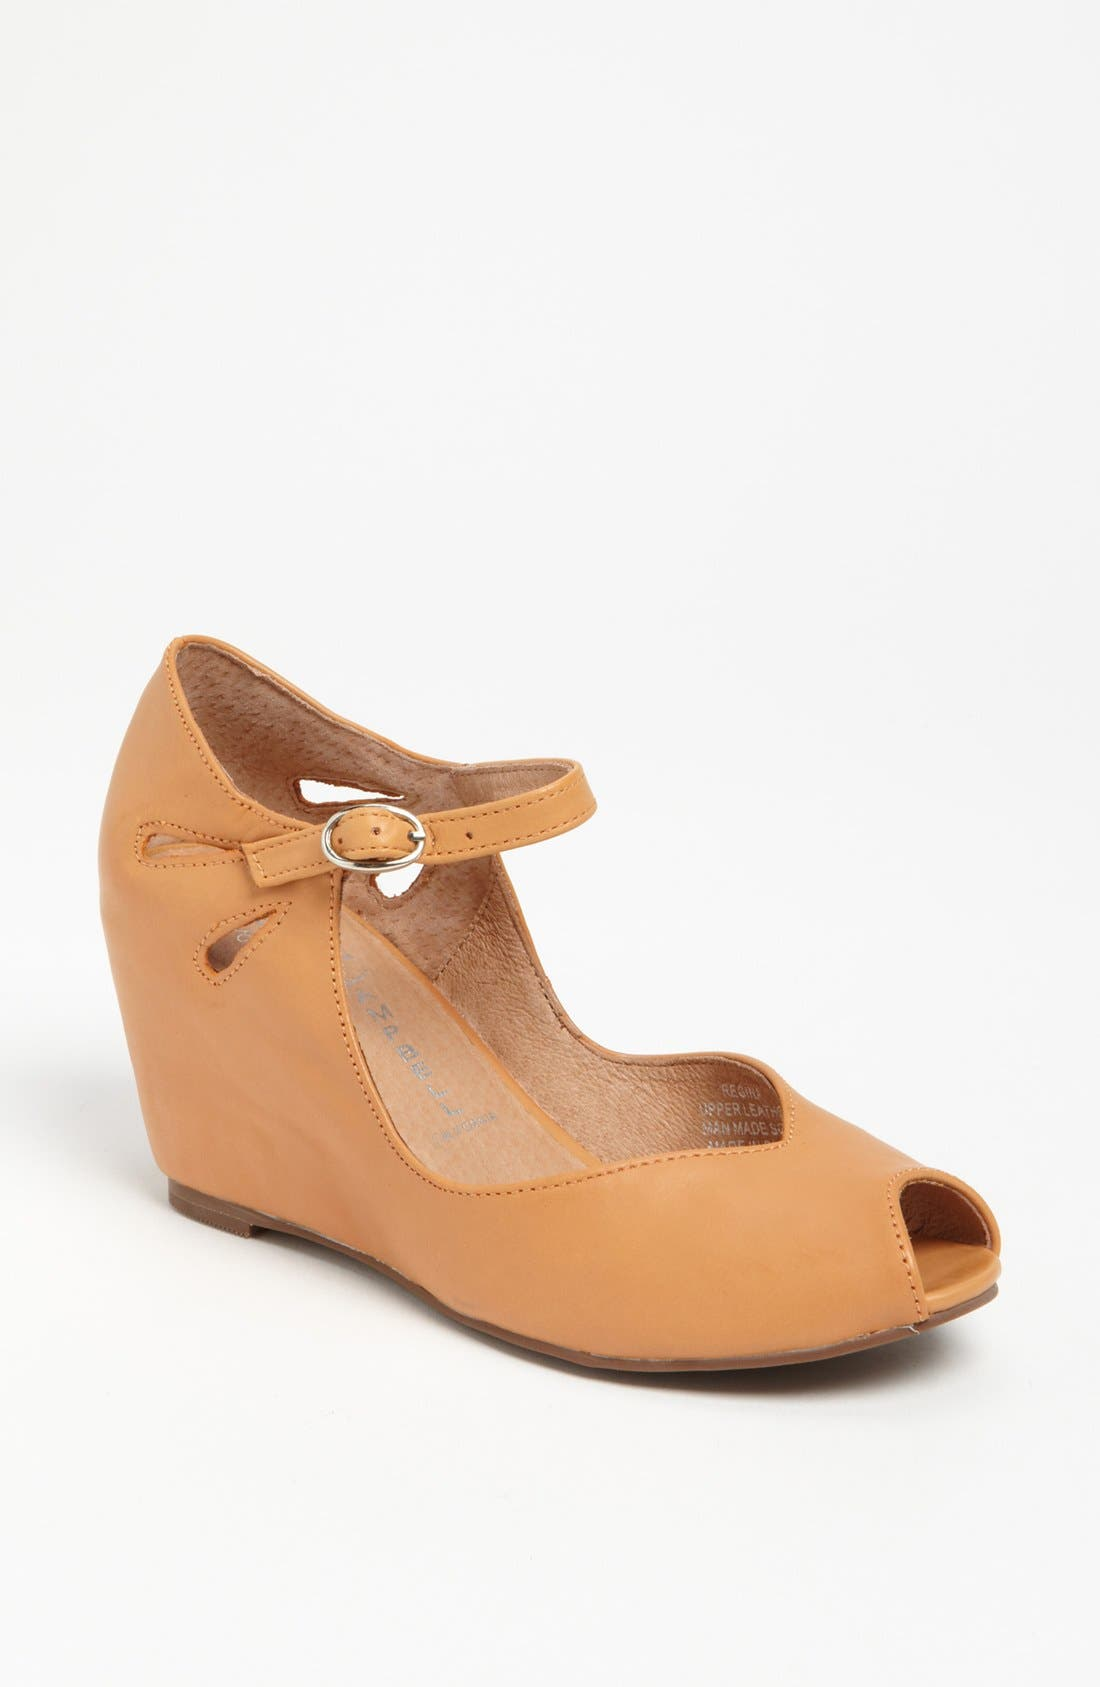 Main Image - Jeffrey Campbell 'Regina' Wedge